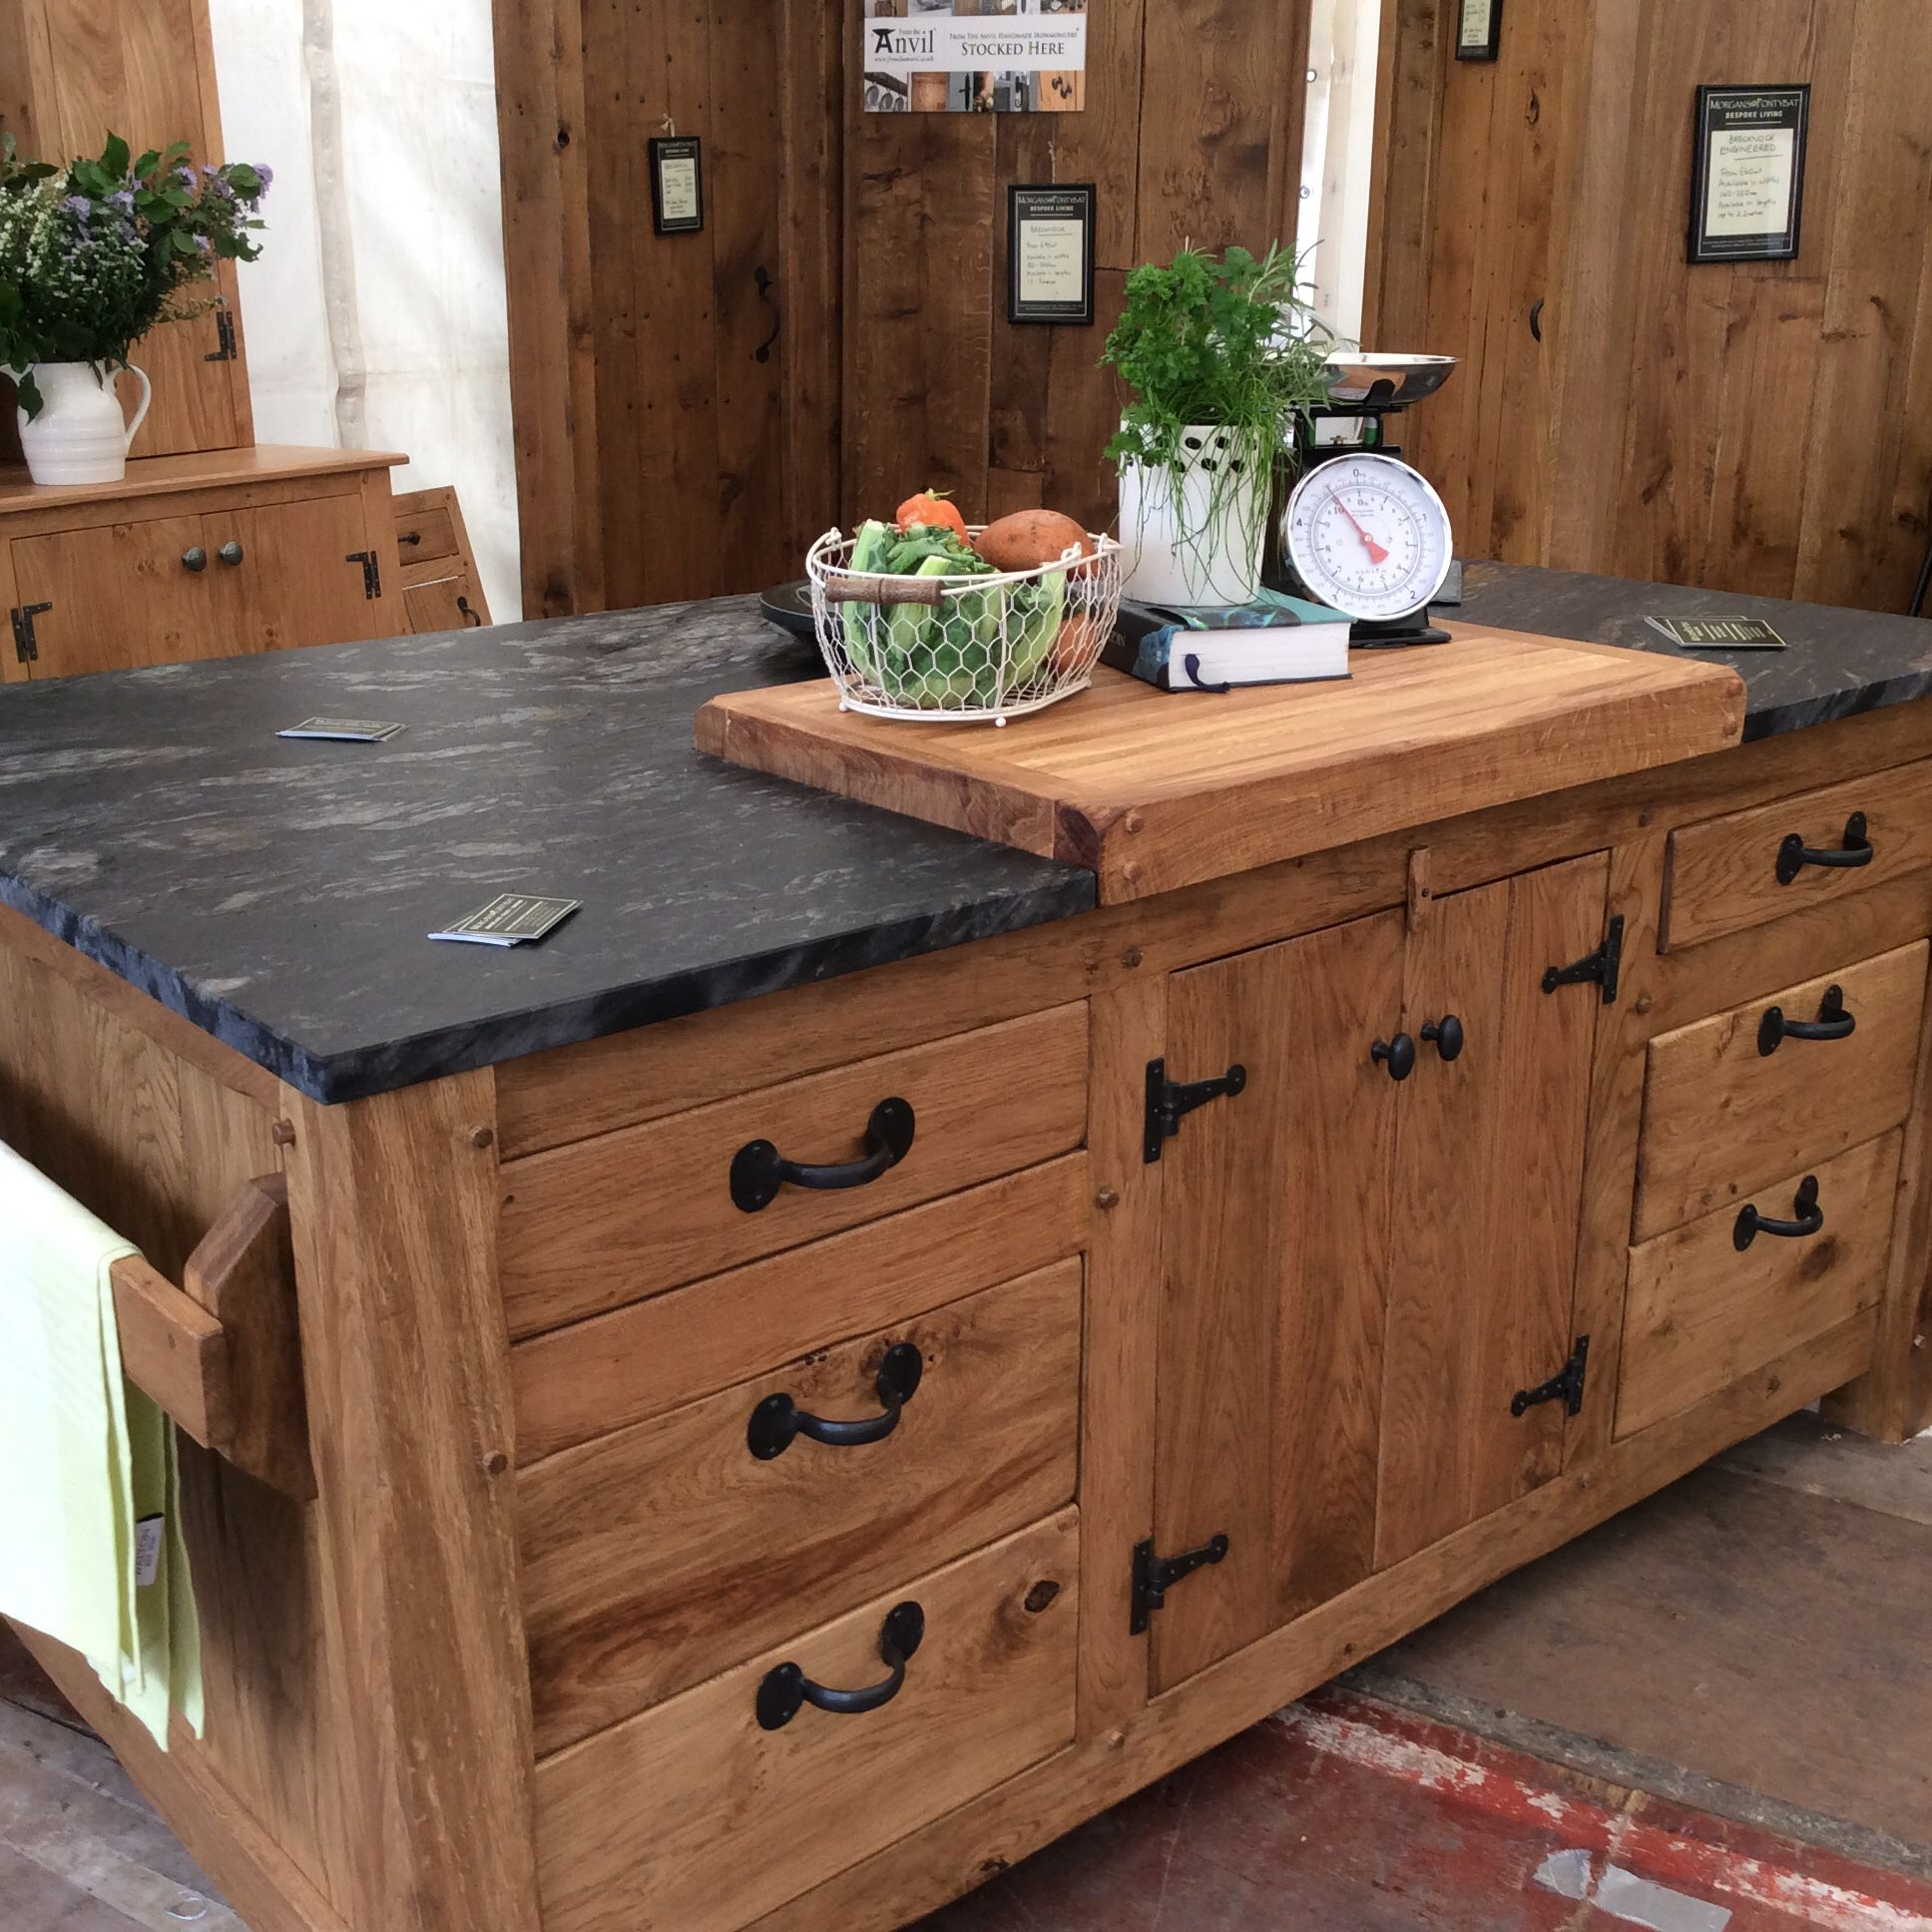 Kitchen Island Unit With Chopping Block And Black Cosmic